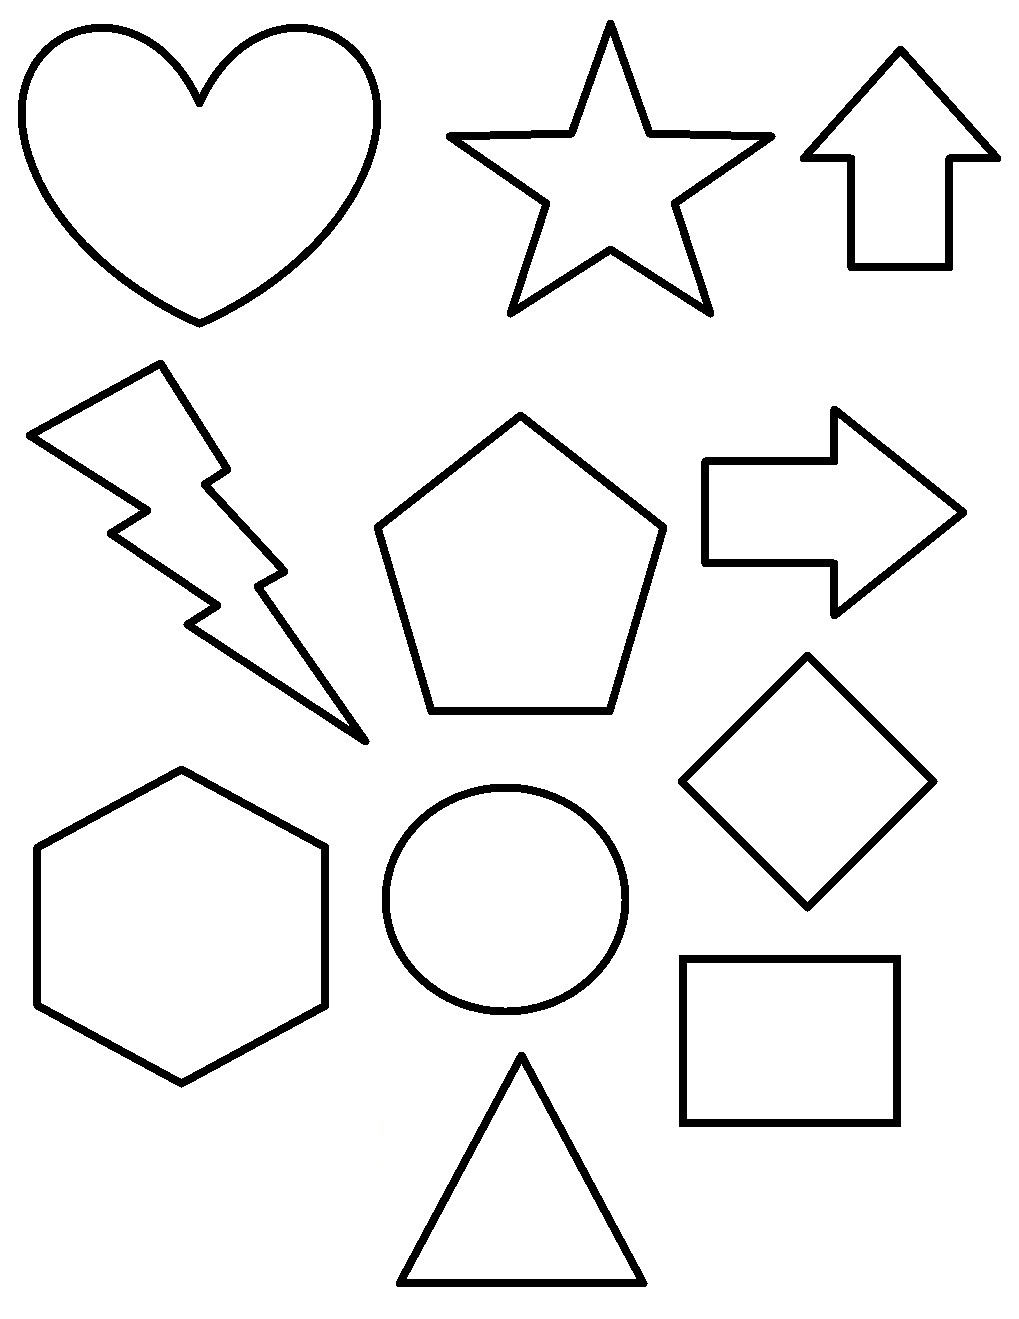 Free Printable Shapes Coloring Pages For Kids - Free Printable Shapes